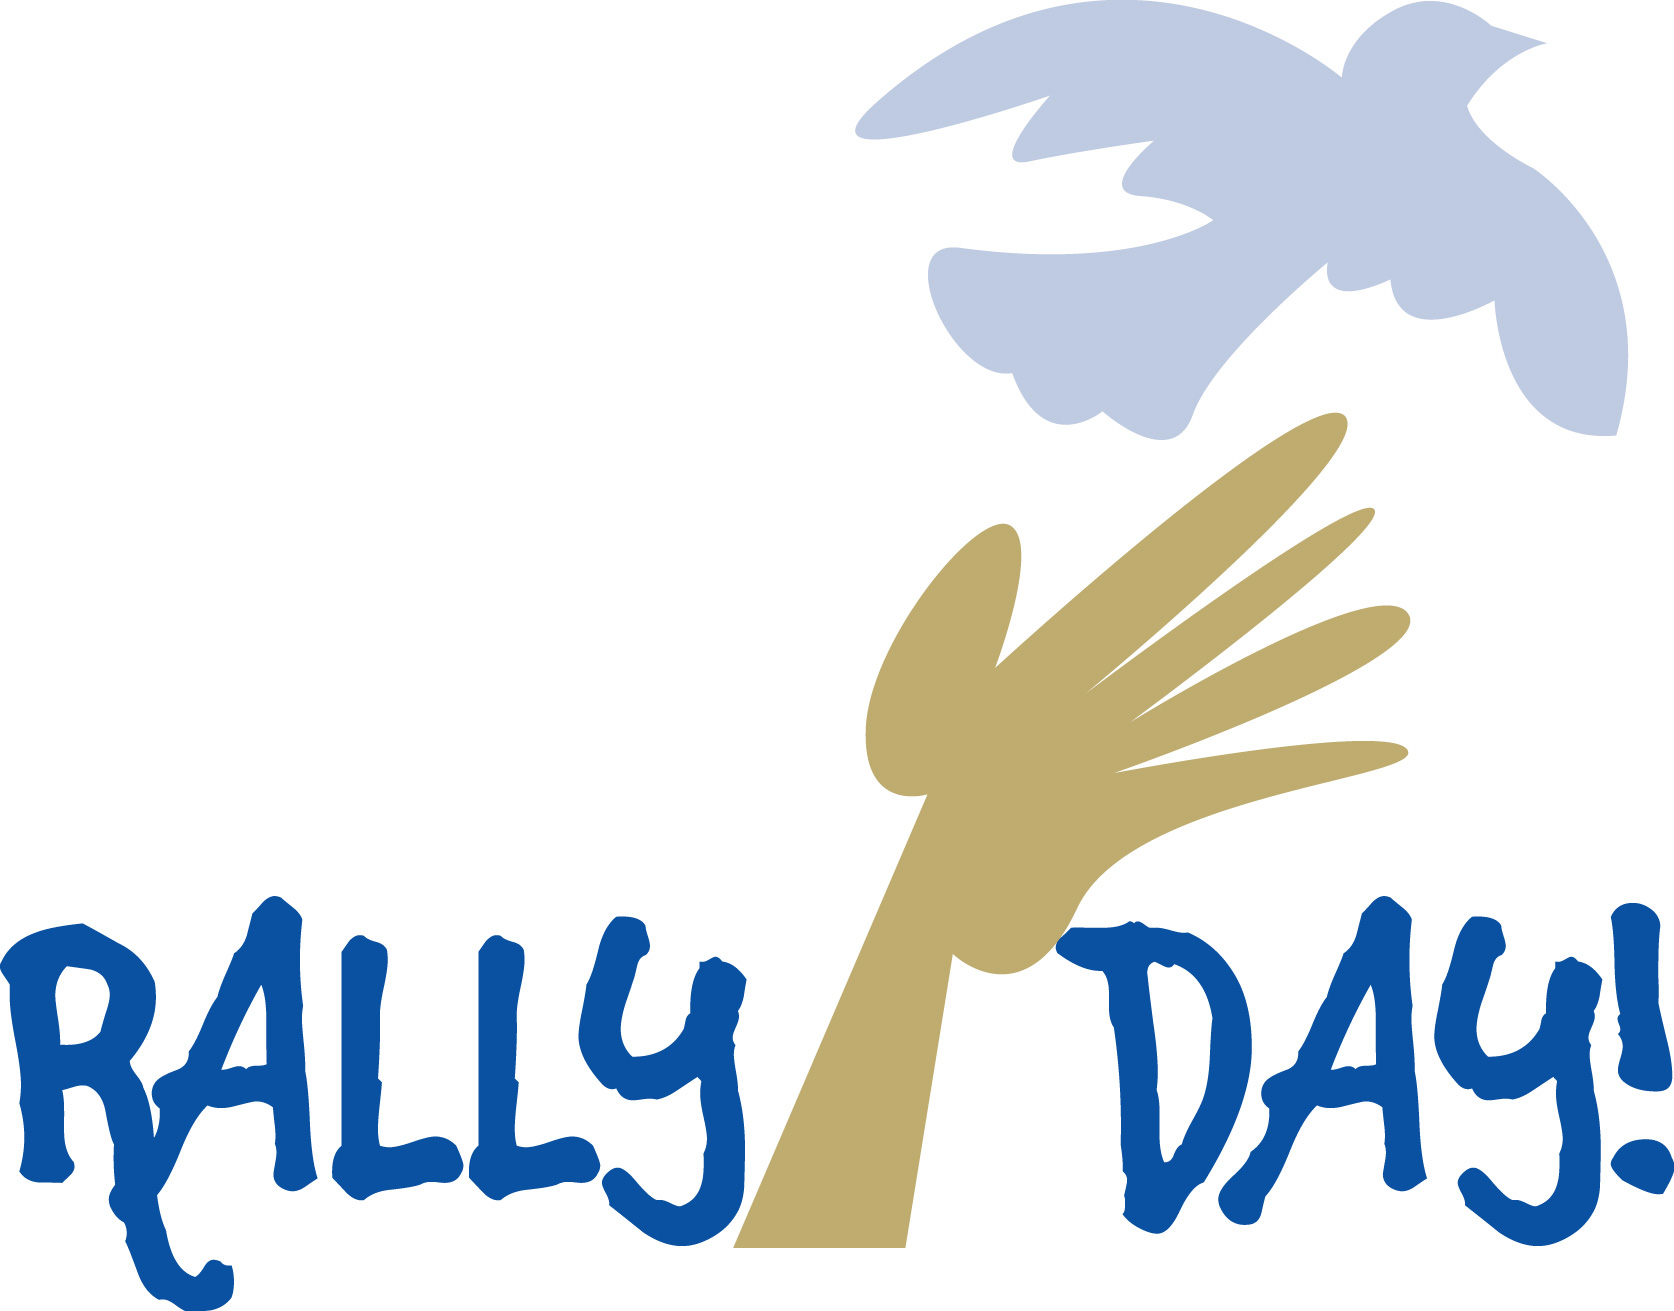 Rally day clipart 1 » Clipart Station.